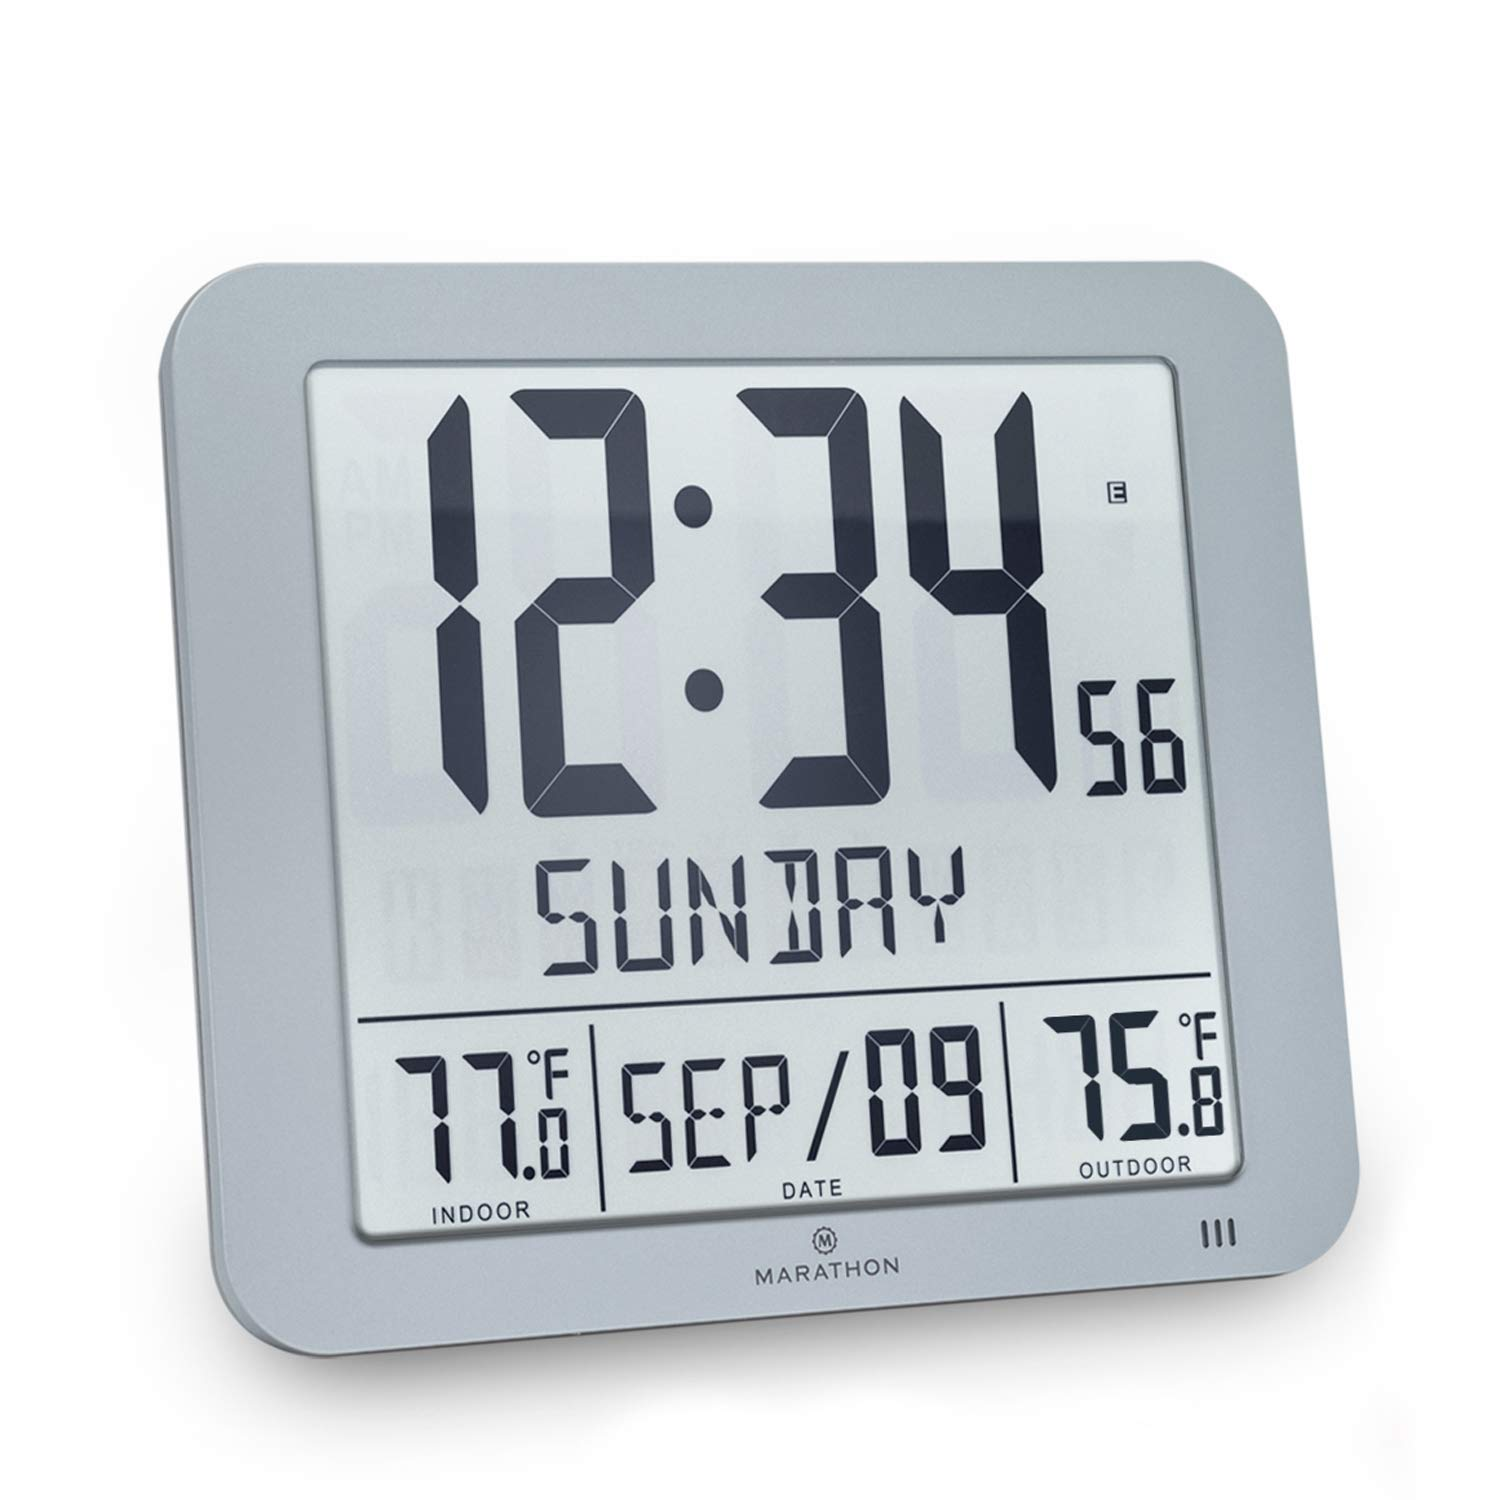 Marathon CL030027-FD-GG Slim Atomic Wall Clock with Indoor/Outdoor Temperature, Full Calendar and Large Display (New Full Display, Graphite Grey) product image